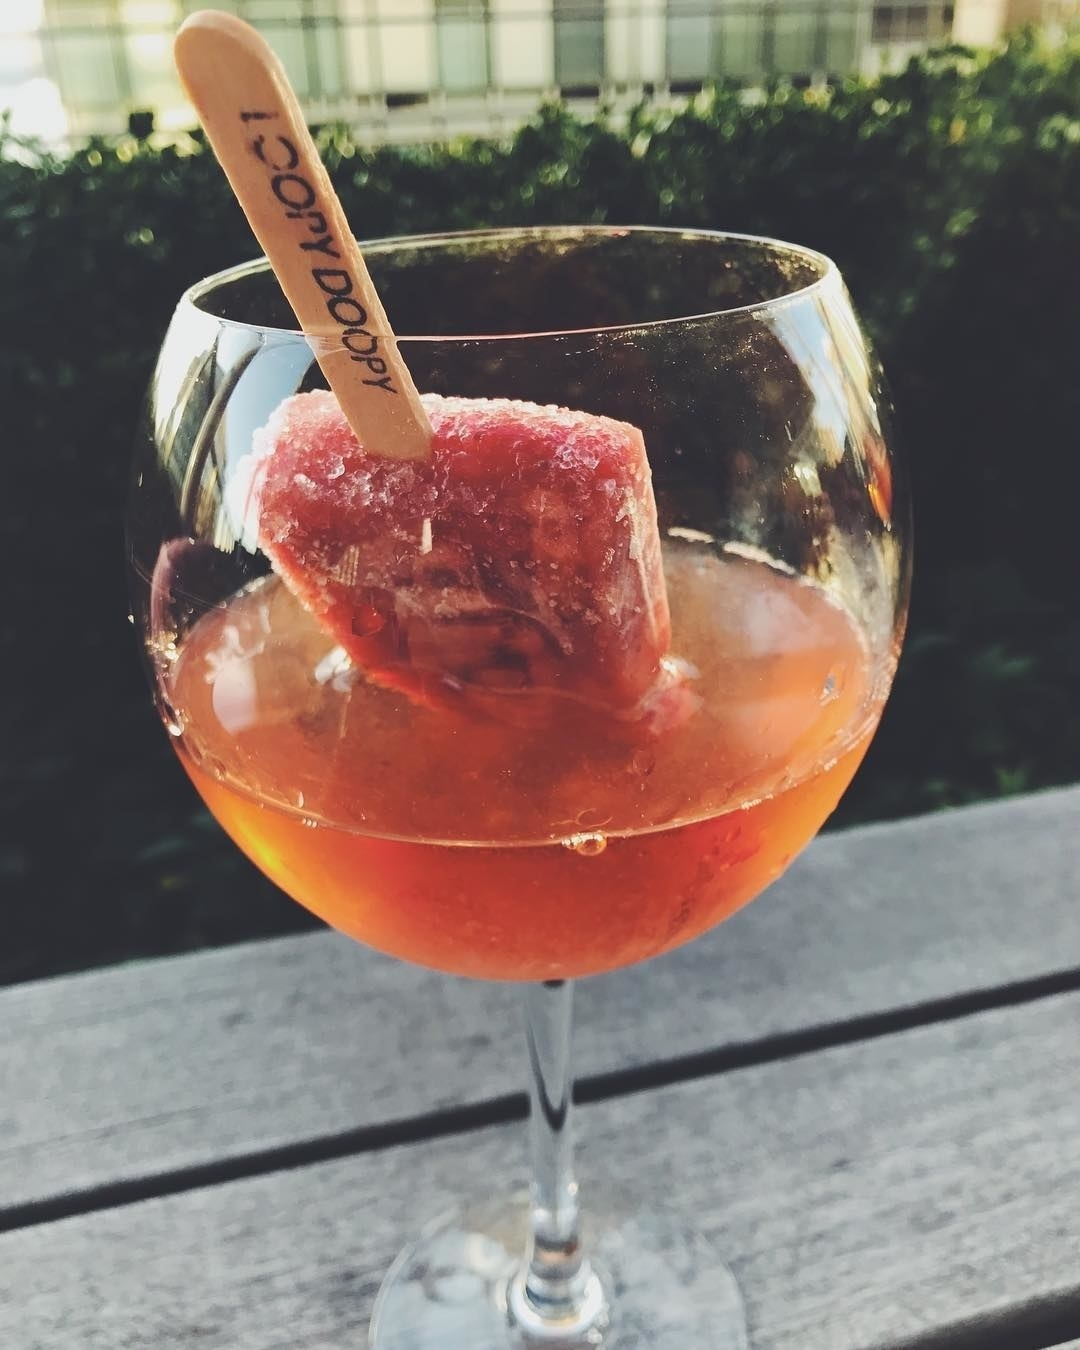 a popsicle in a glass of Prosecco